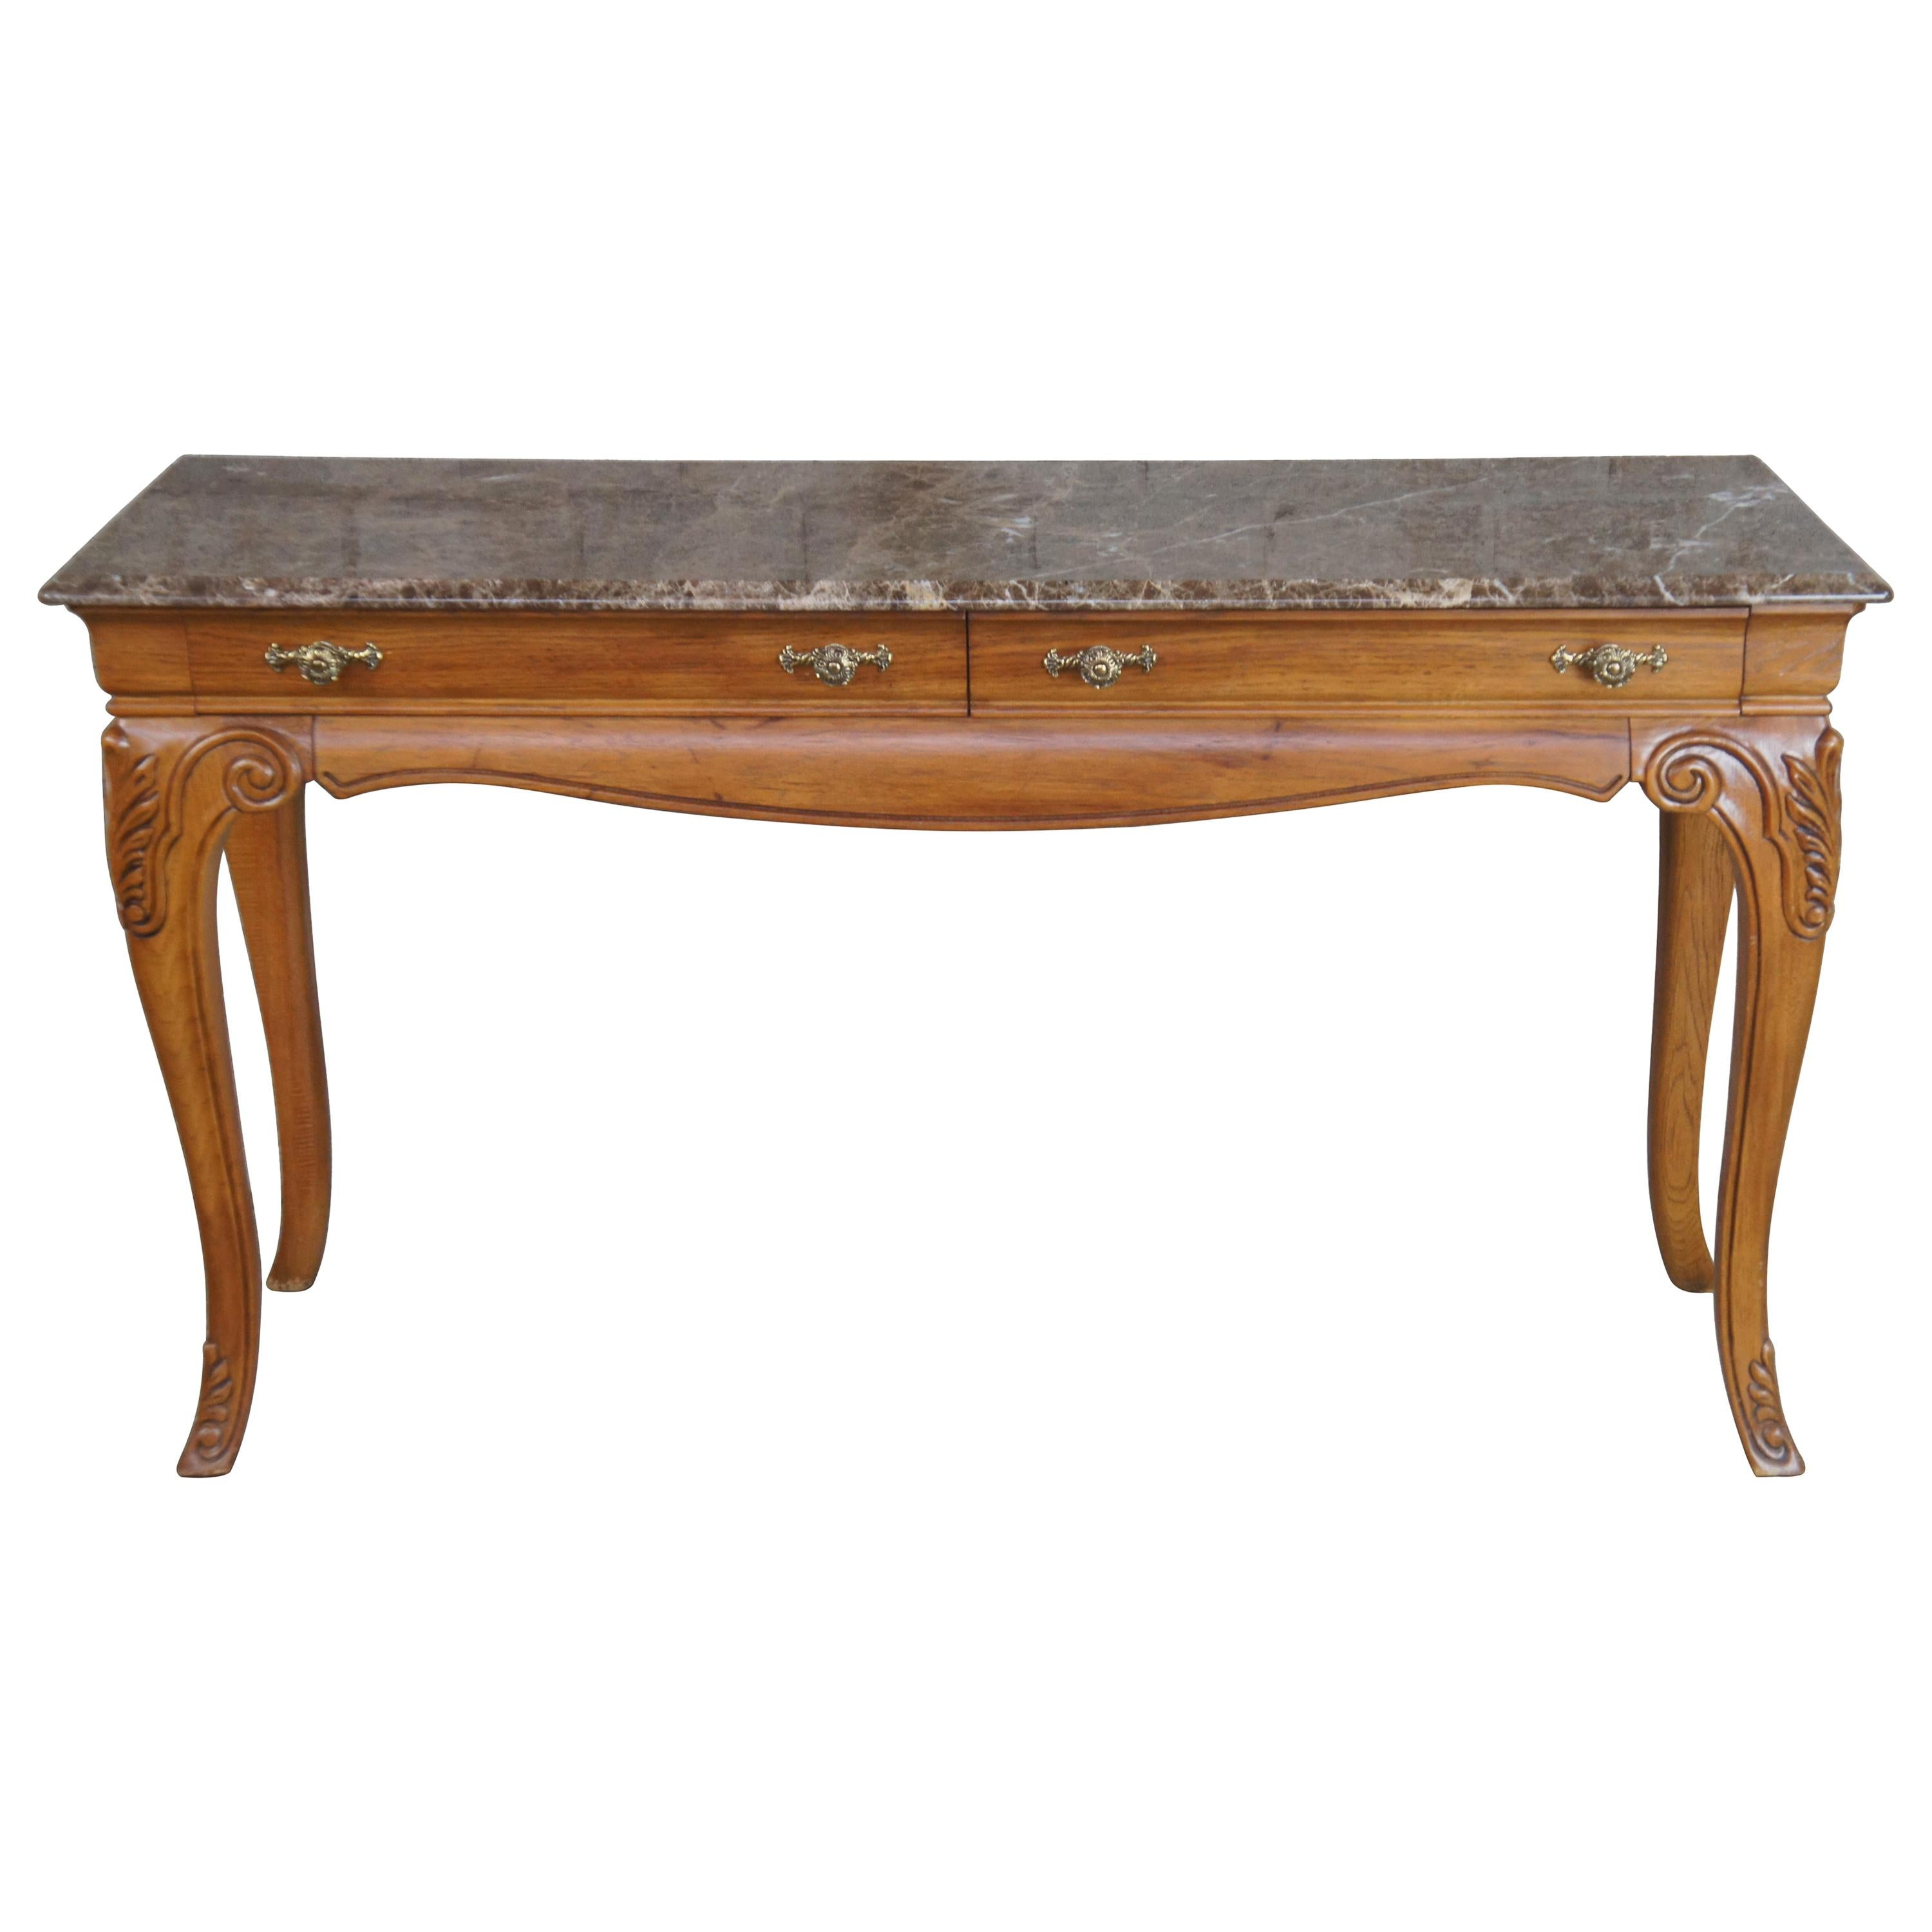 Vintage Thomasville Oak & Marble French Country Sofa Table Console Sideboard